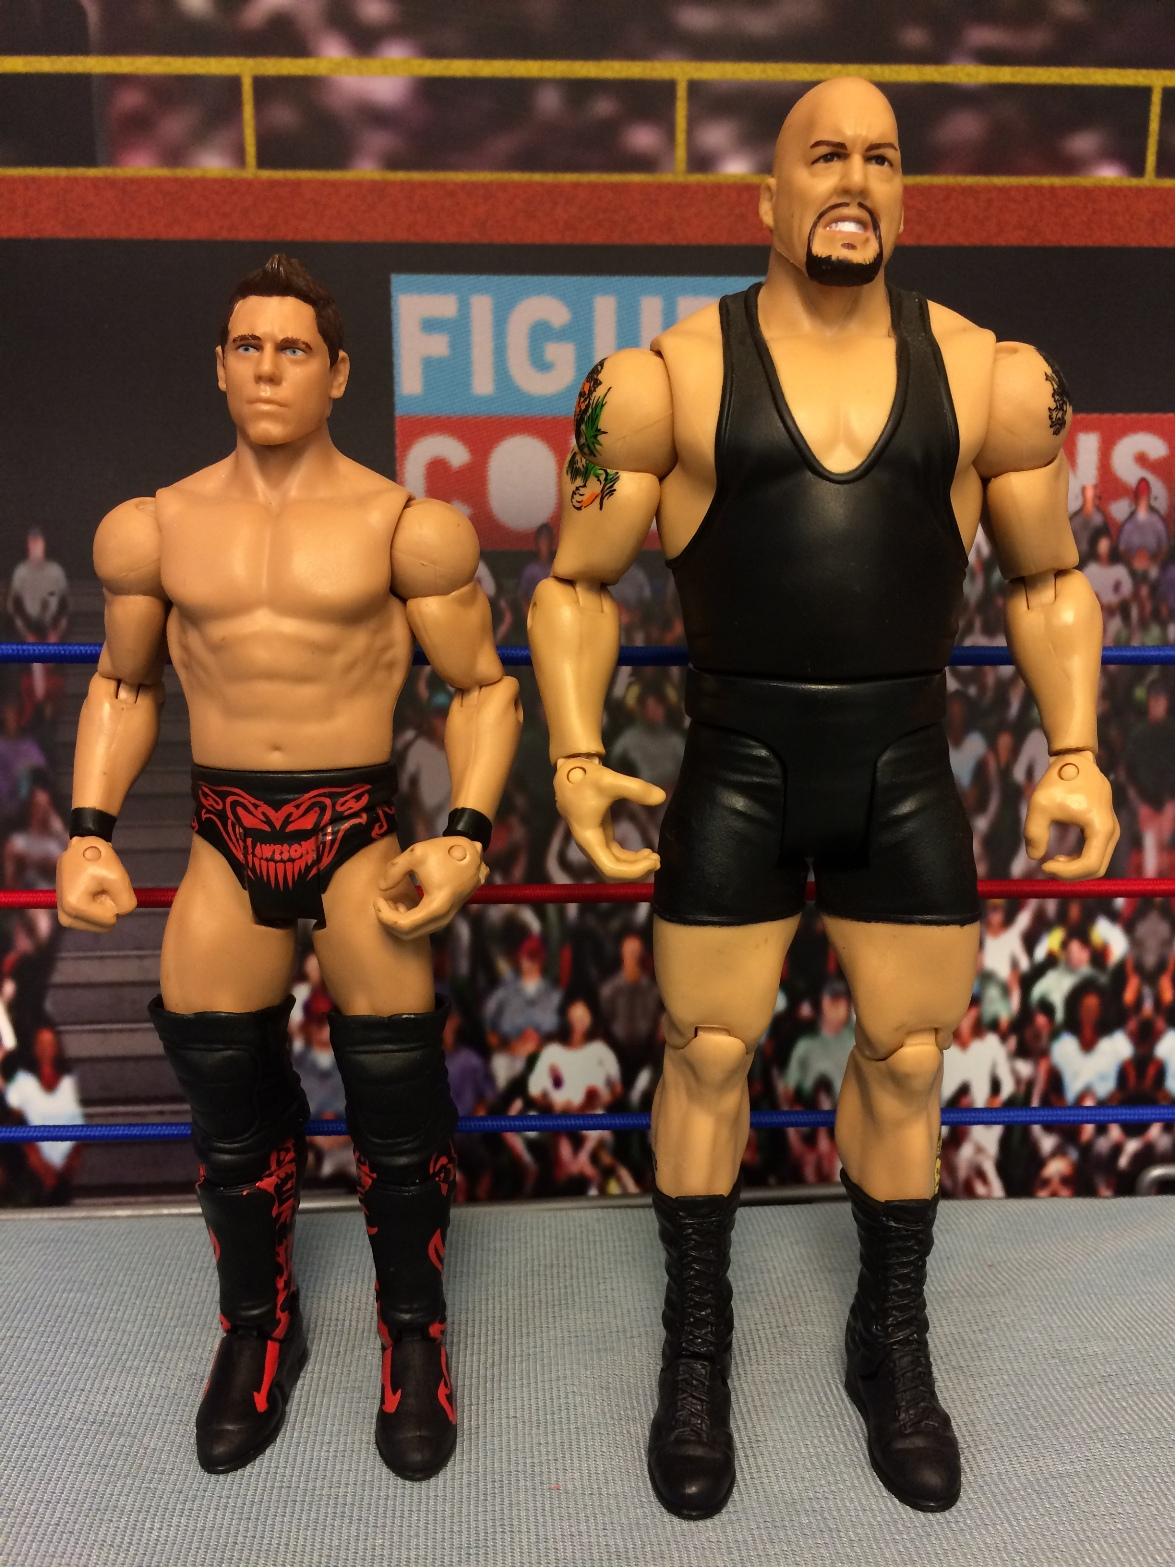 The Miz and the Big Show